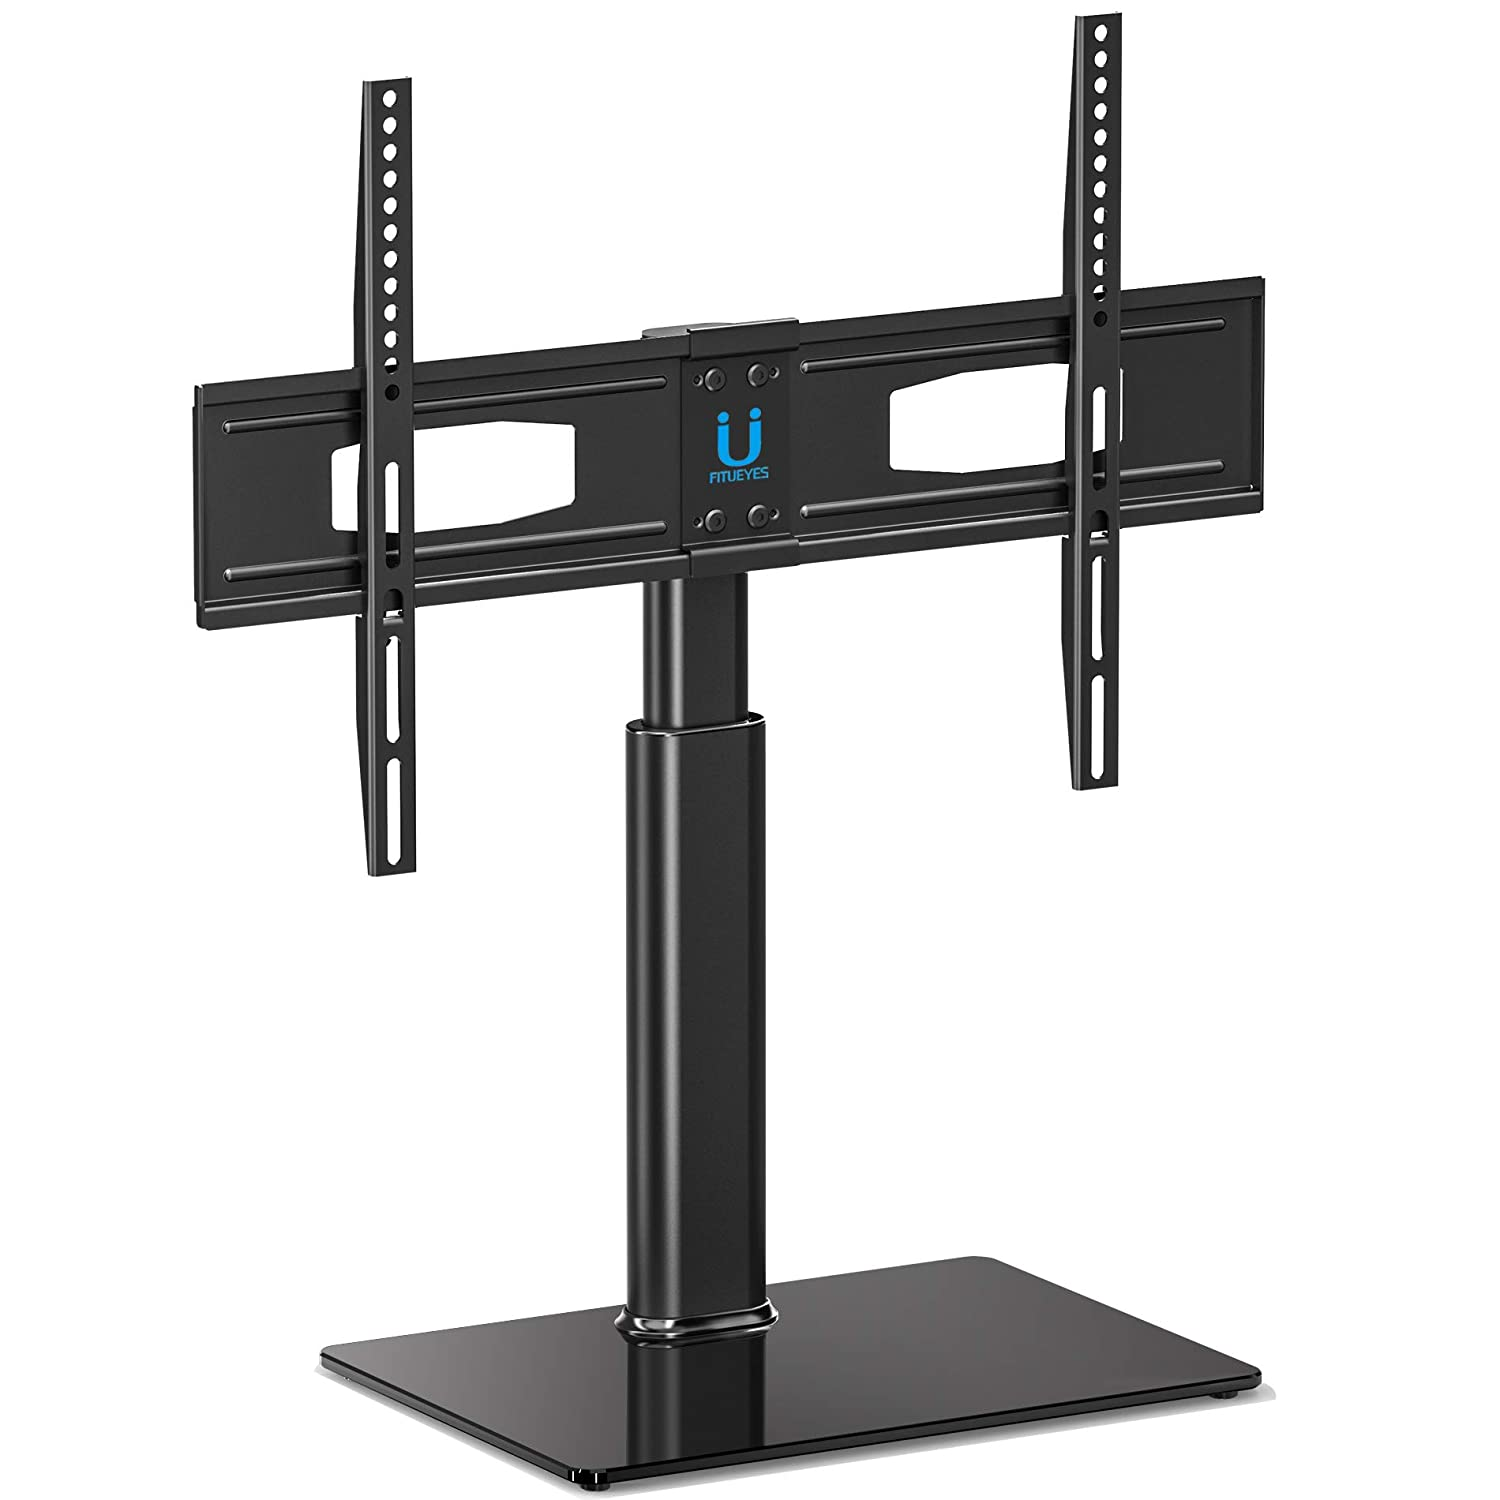 FITUEYES Swivel Universal TV Stand Height Adjustable Fit Most 32'-60 inch Flat Curved Screen Vizio/Sumsung/Sony Tvs Max VESA 400x600 TT105202GB